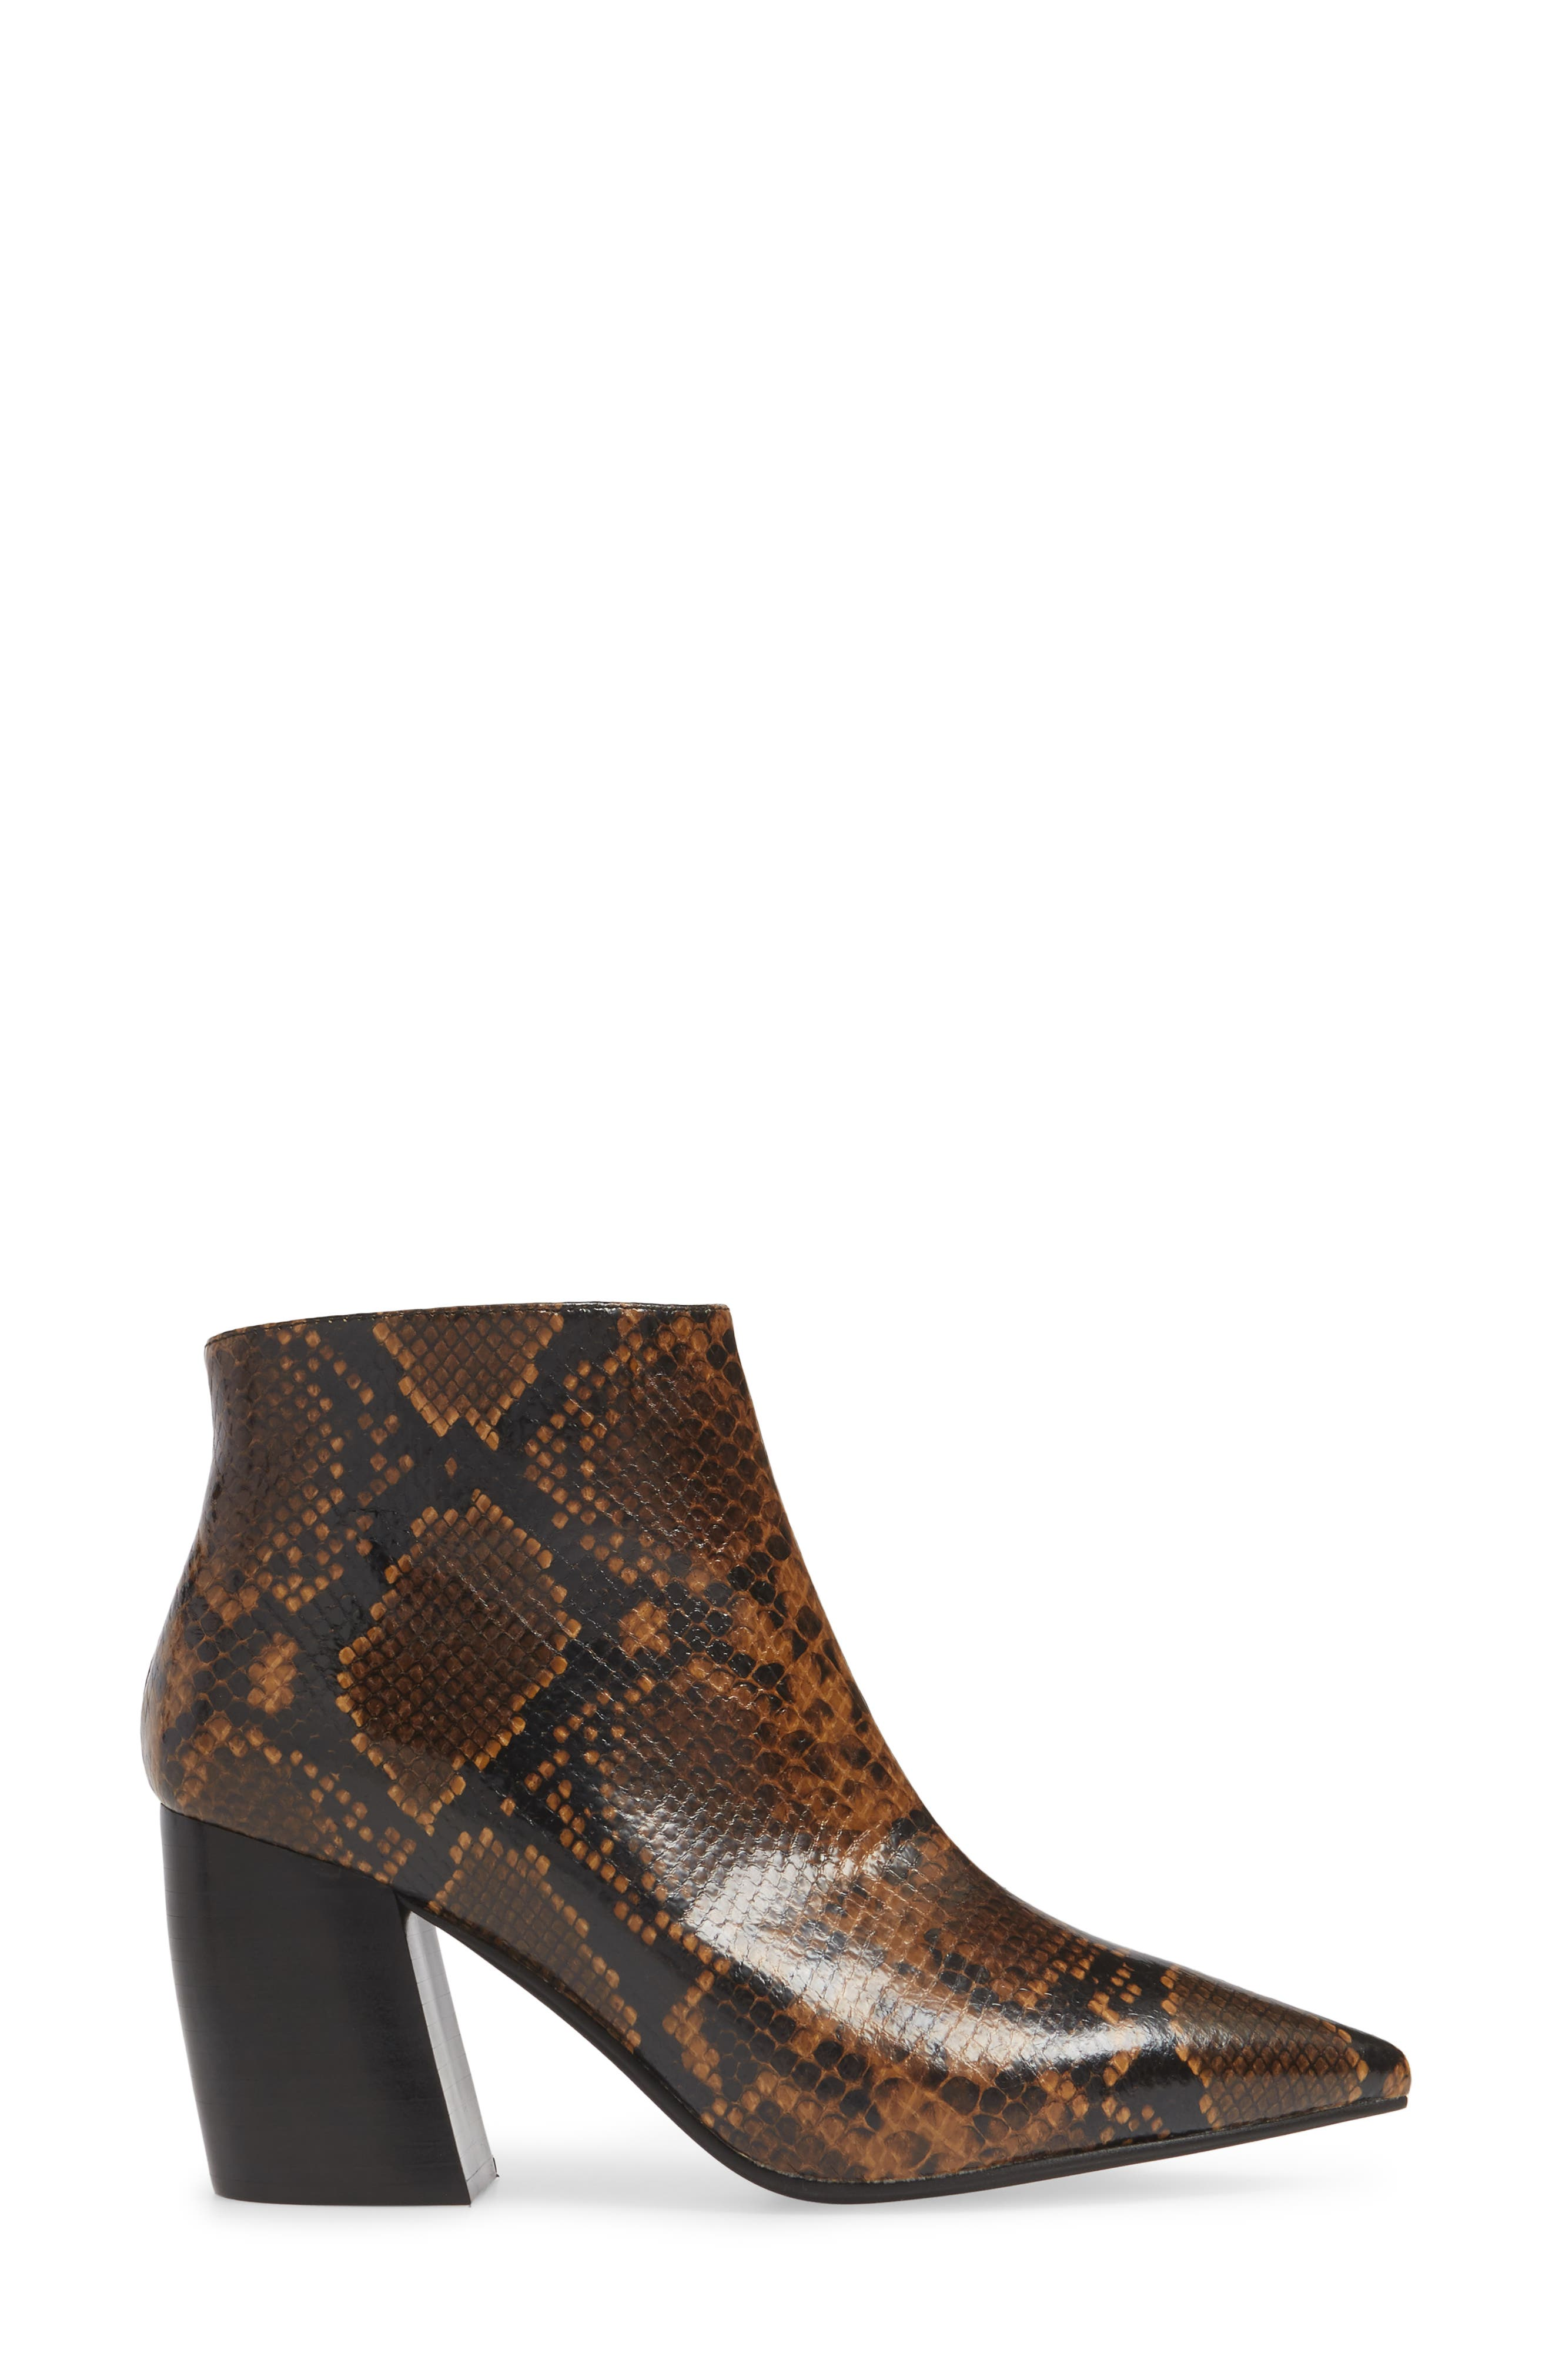 JEFFREY CAMPBELL, Final Bootie, Alternate thumbnail 3, color, NATURAL/ BLACK SNAKE PRINT